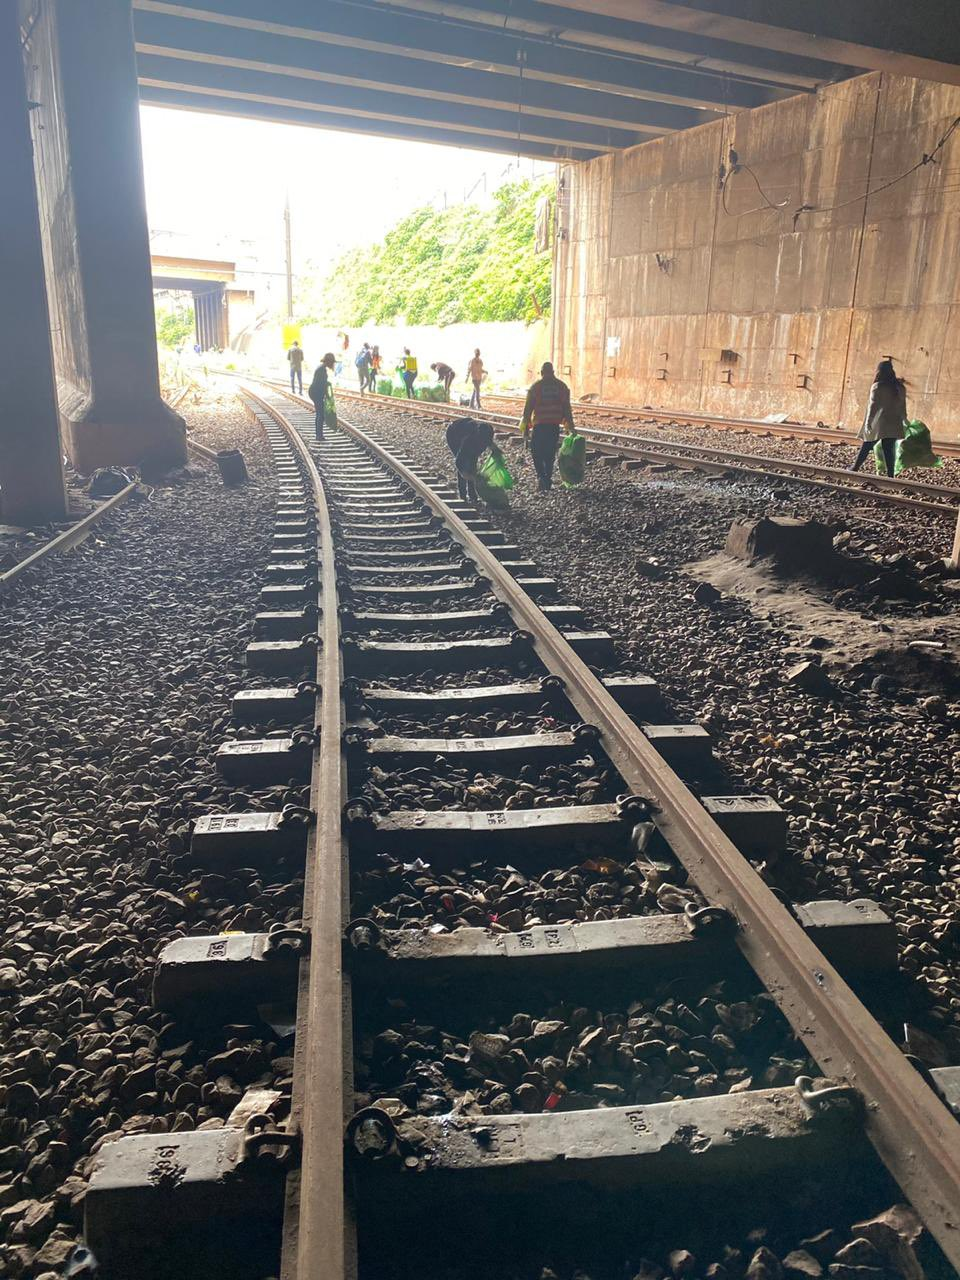 South Africa: Commuters worry PRASA negligence on station conditions